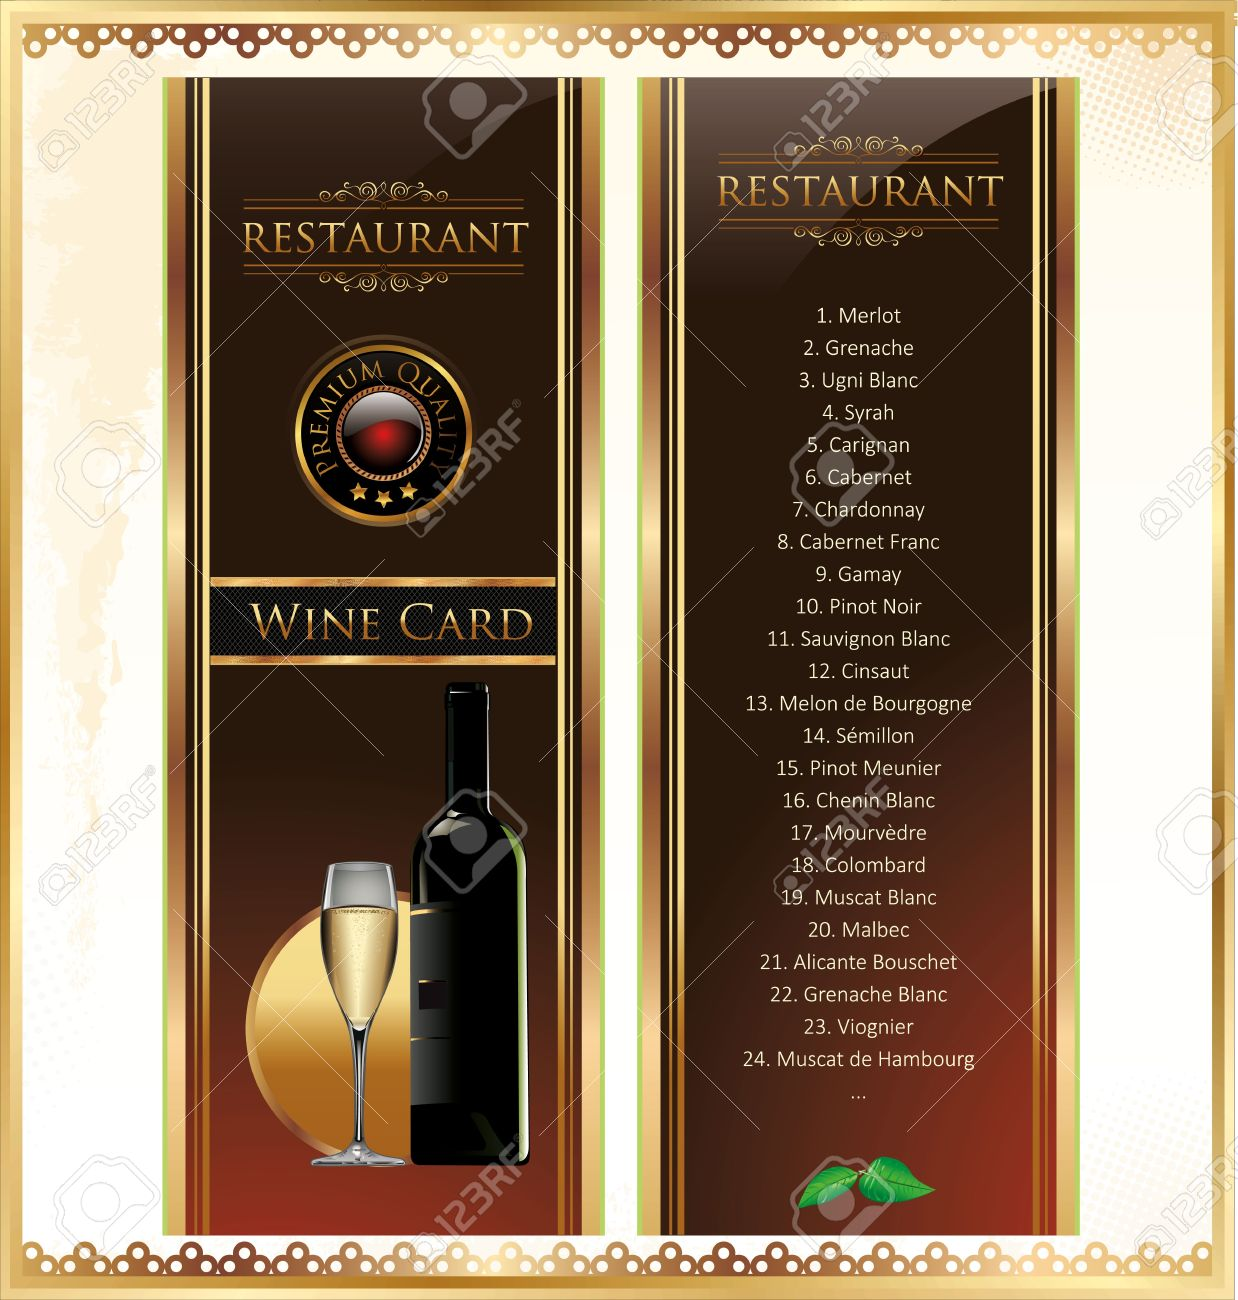 Elegant Drink Menu Card With Wine Glass And Bottle Royalty Free ...